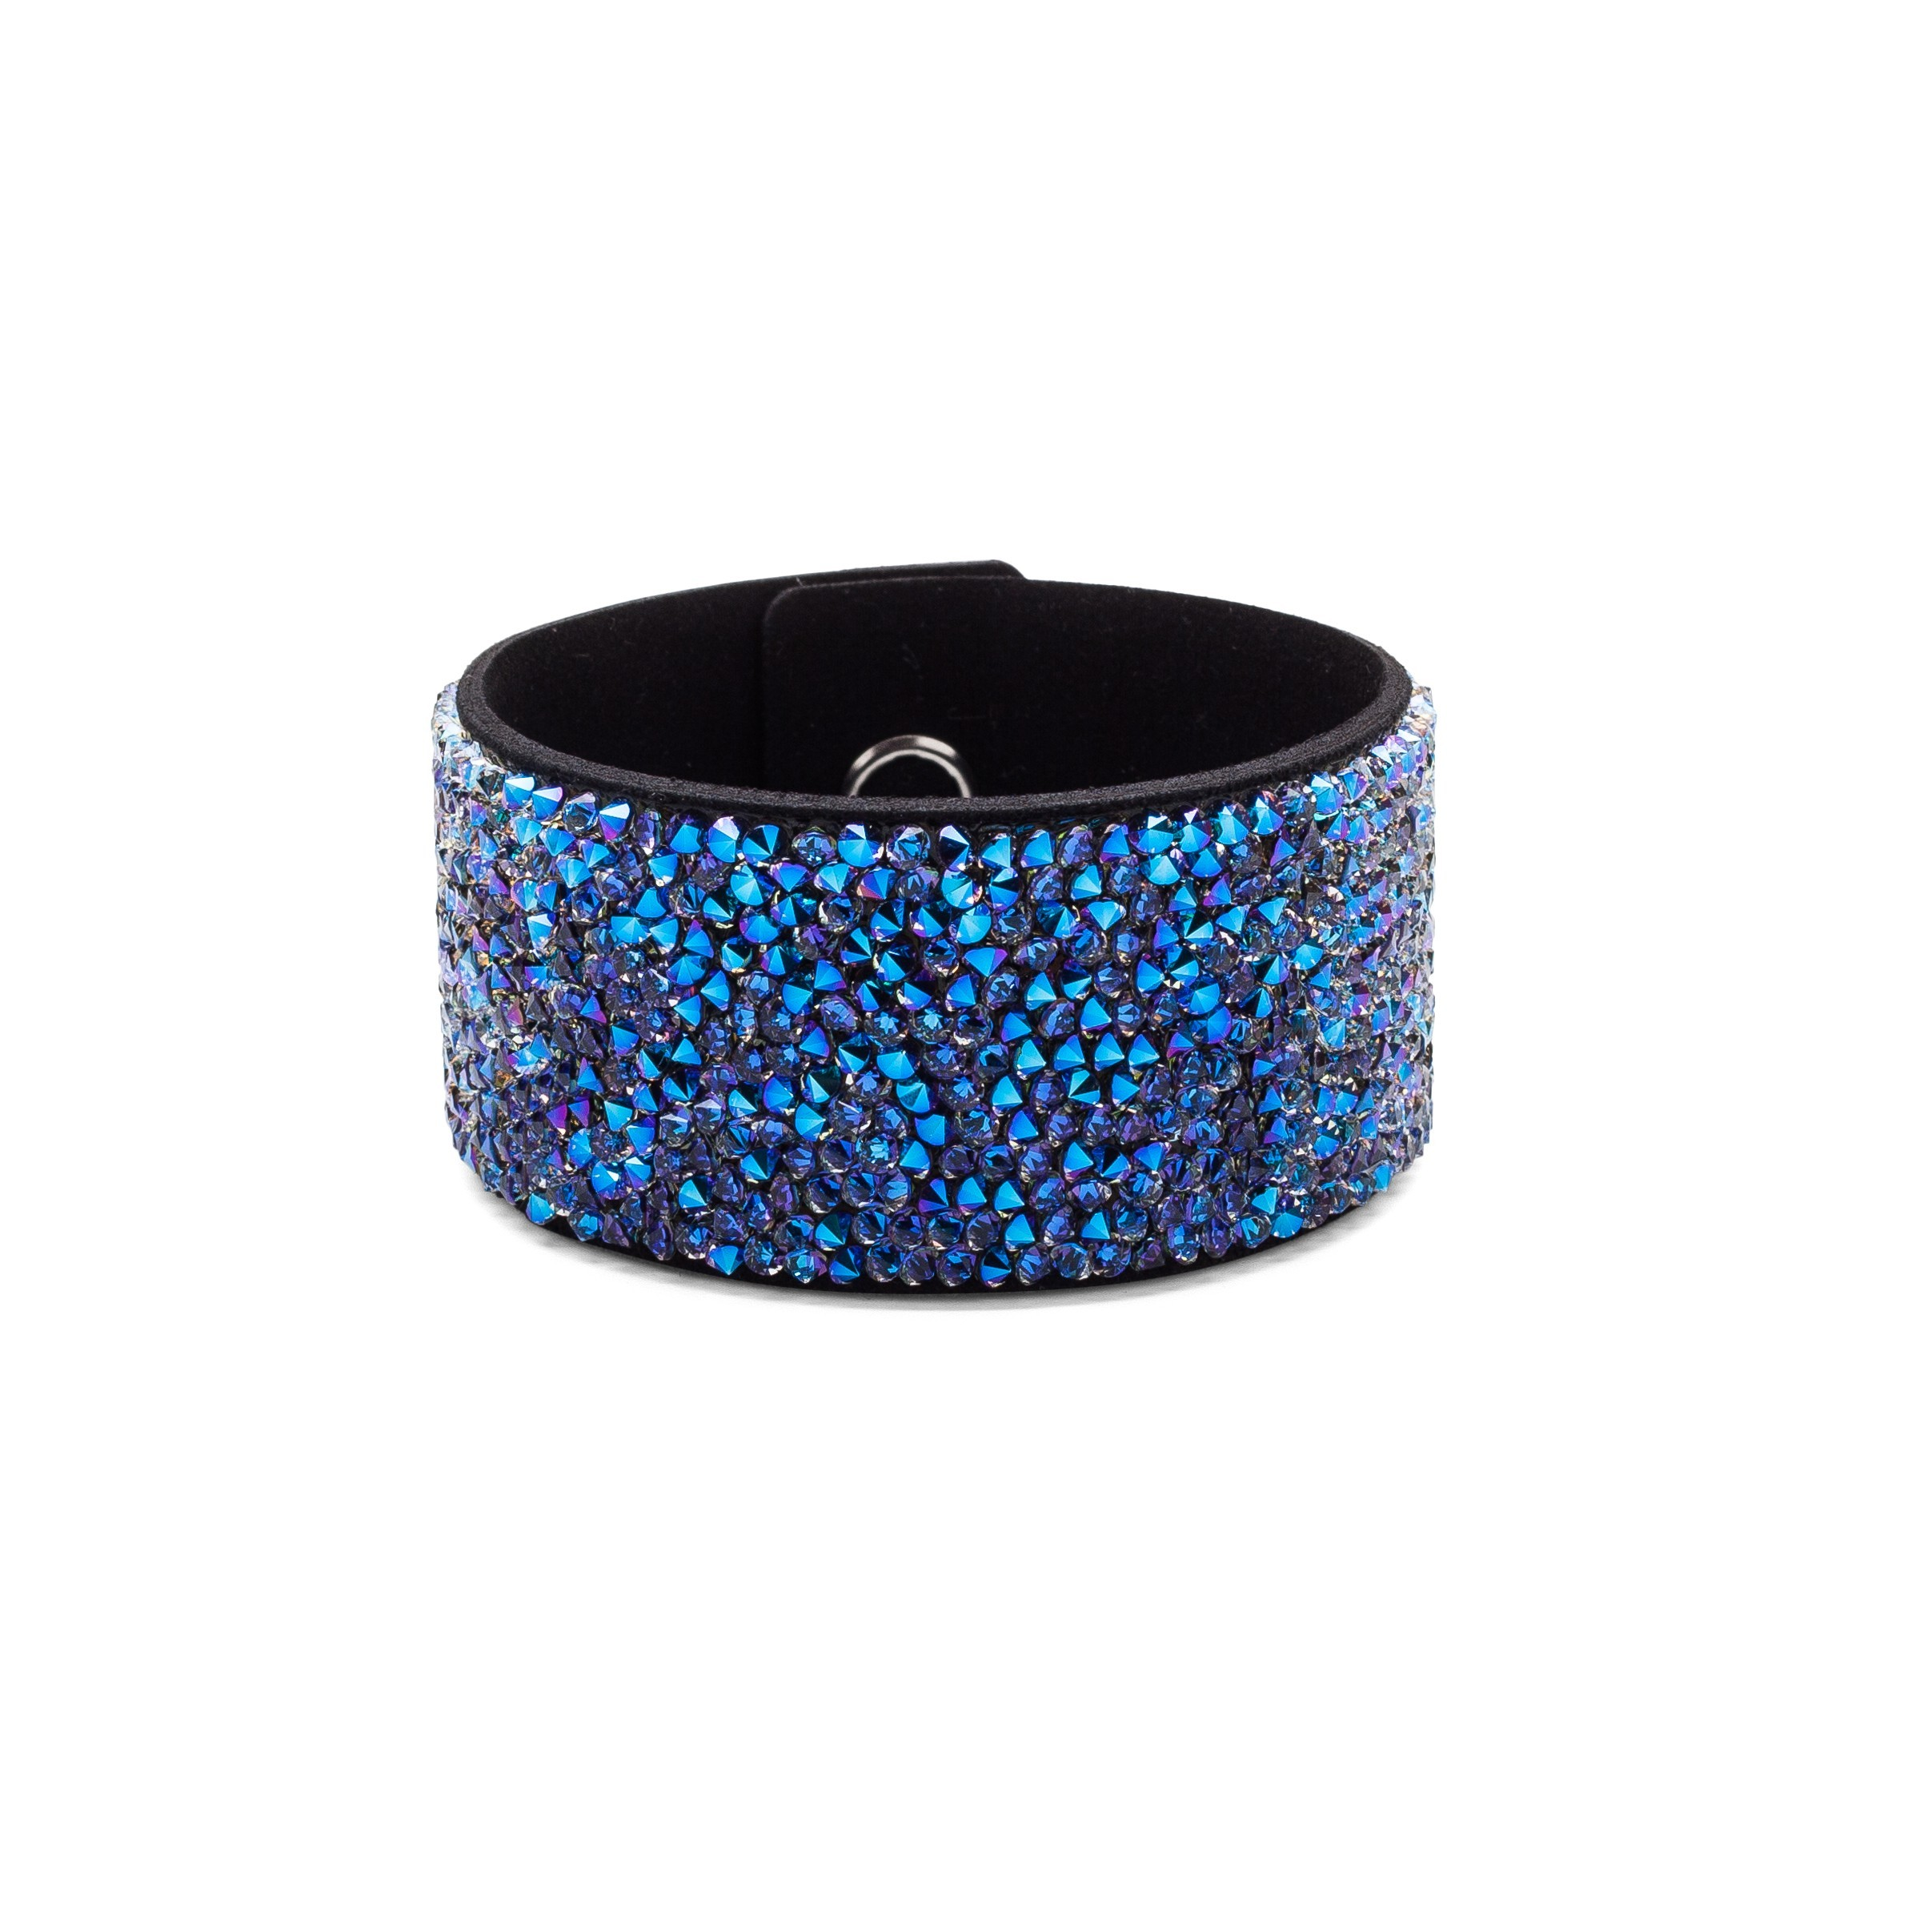 BRACELET WITH ALCANTARA AND SWAROVSKI CRYSTAL ROCKS – MODEL 19